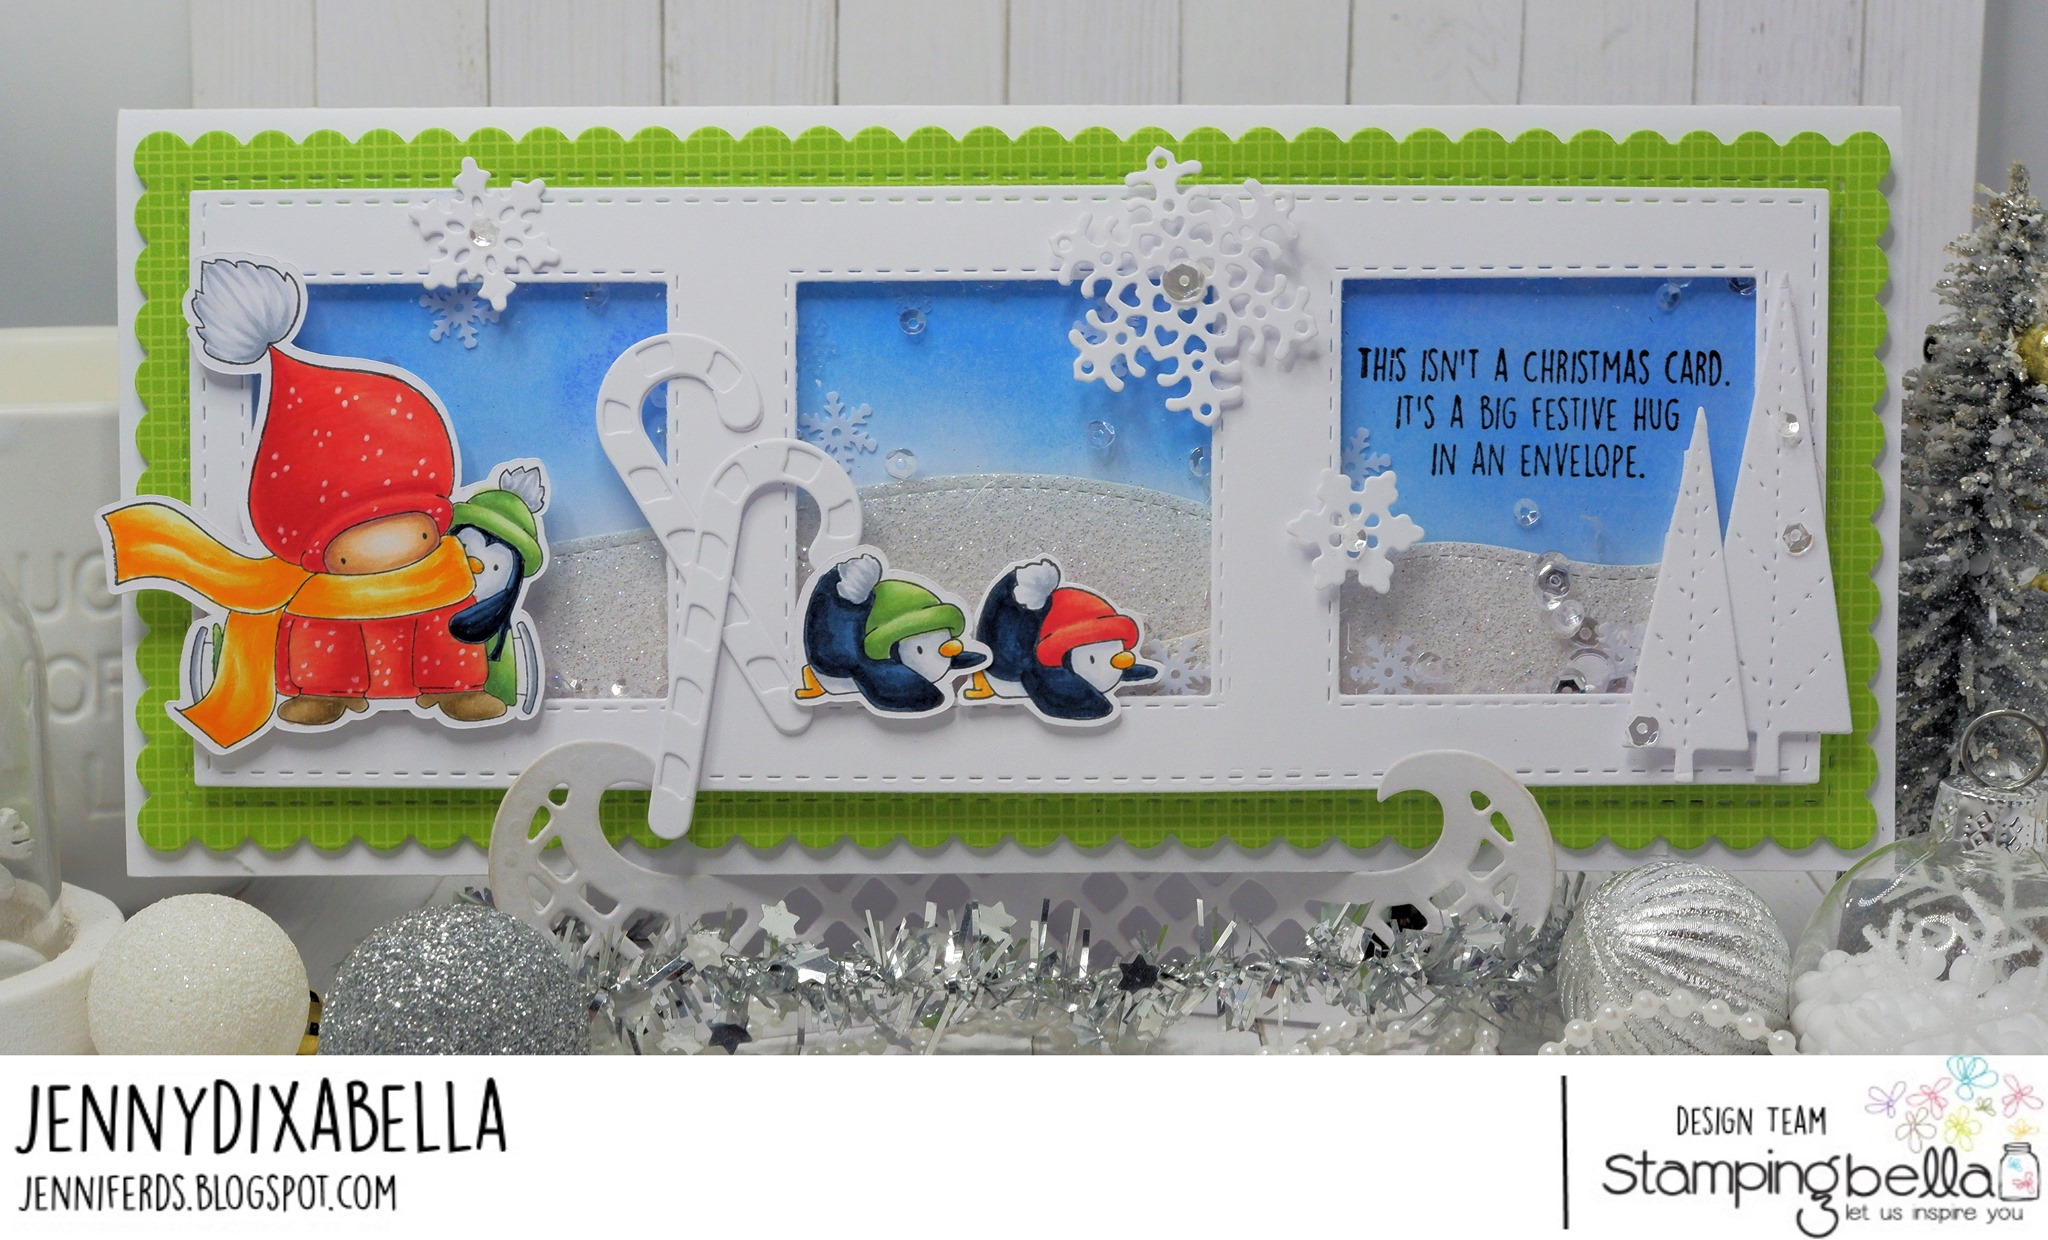 www.stampingbella.com: rubber stamp used BUNDLE GIRL SKATER card by JENNY DIX